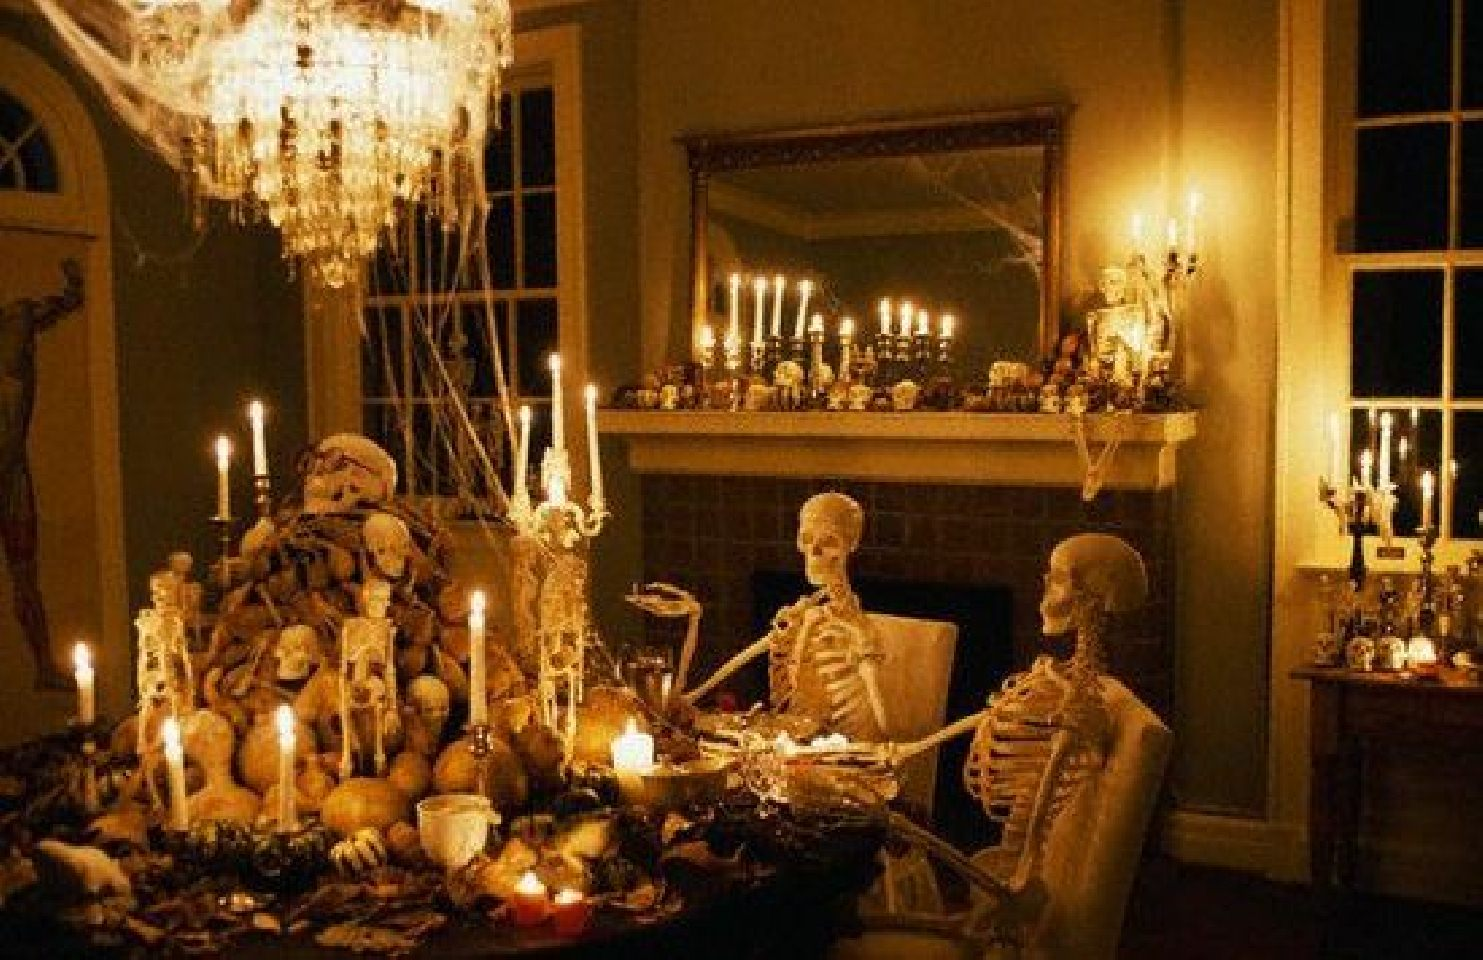 House decoration ideas 2017 for halloween party lighting Decorations for the home